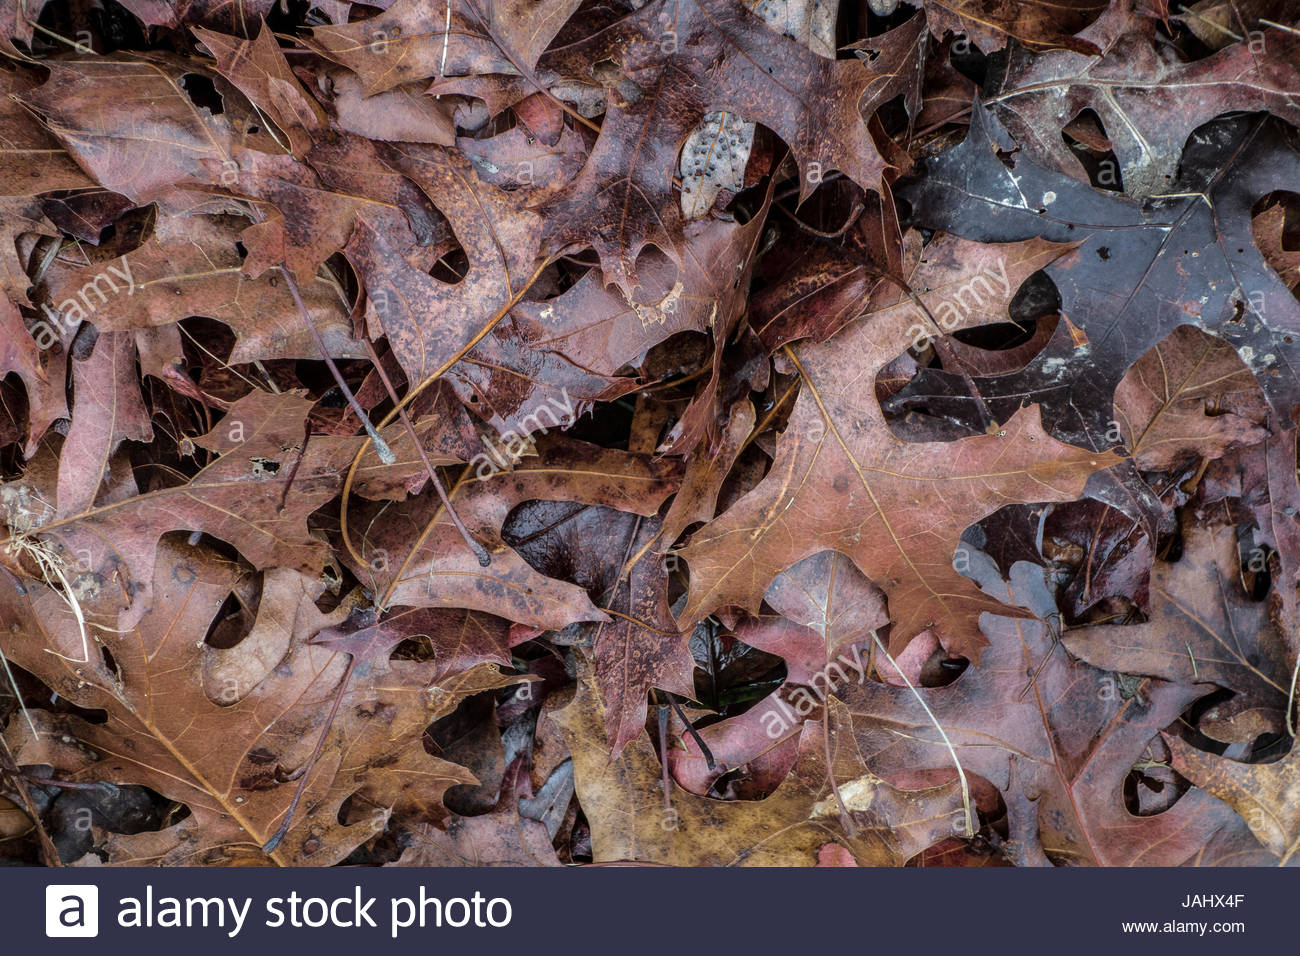 A pile of damp oak leaves in a yard, in winter. - Stock Image